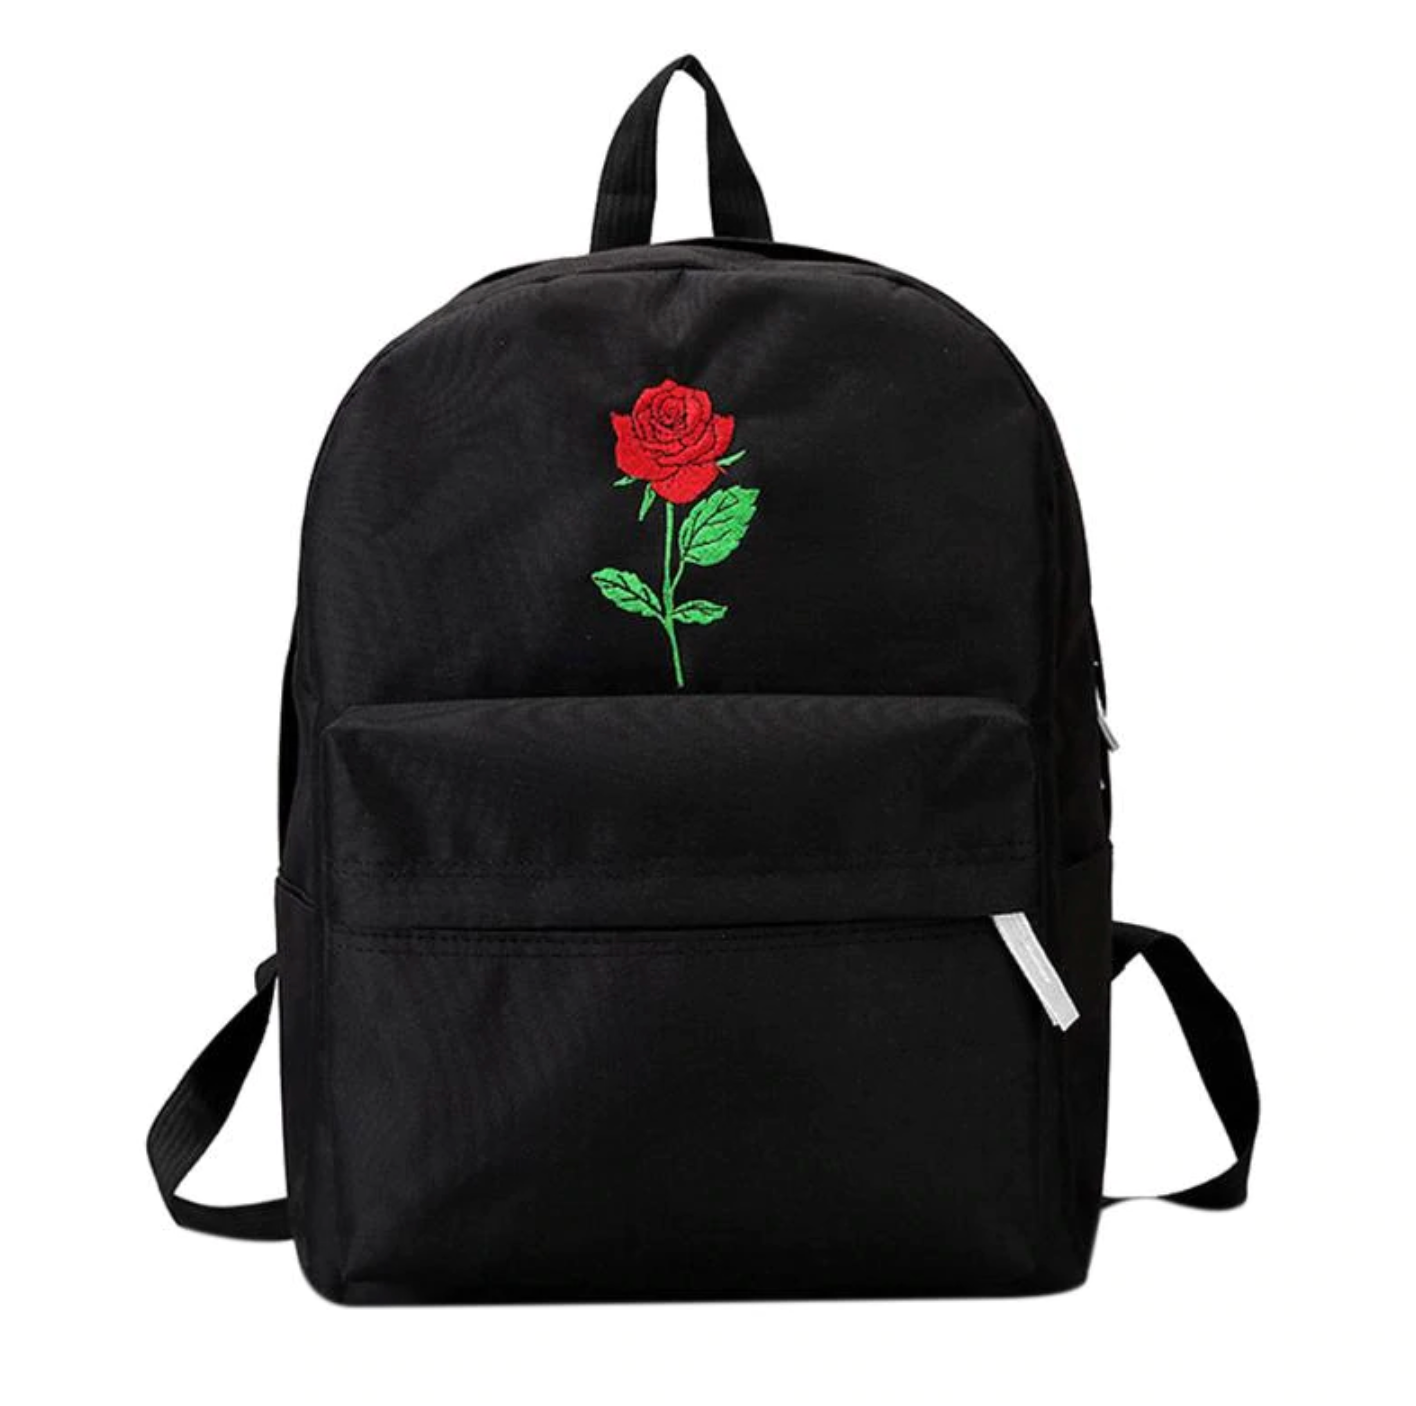 3fa20a7ec5a3 Women Backpack with Red Rose